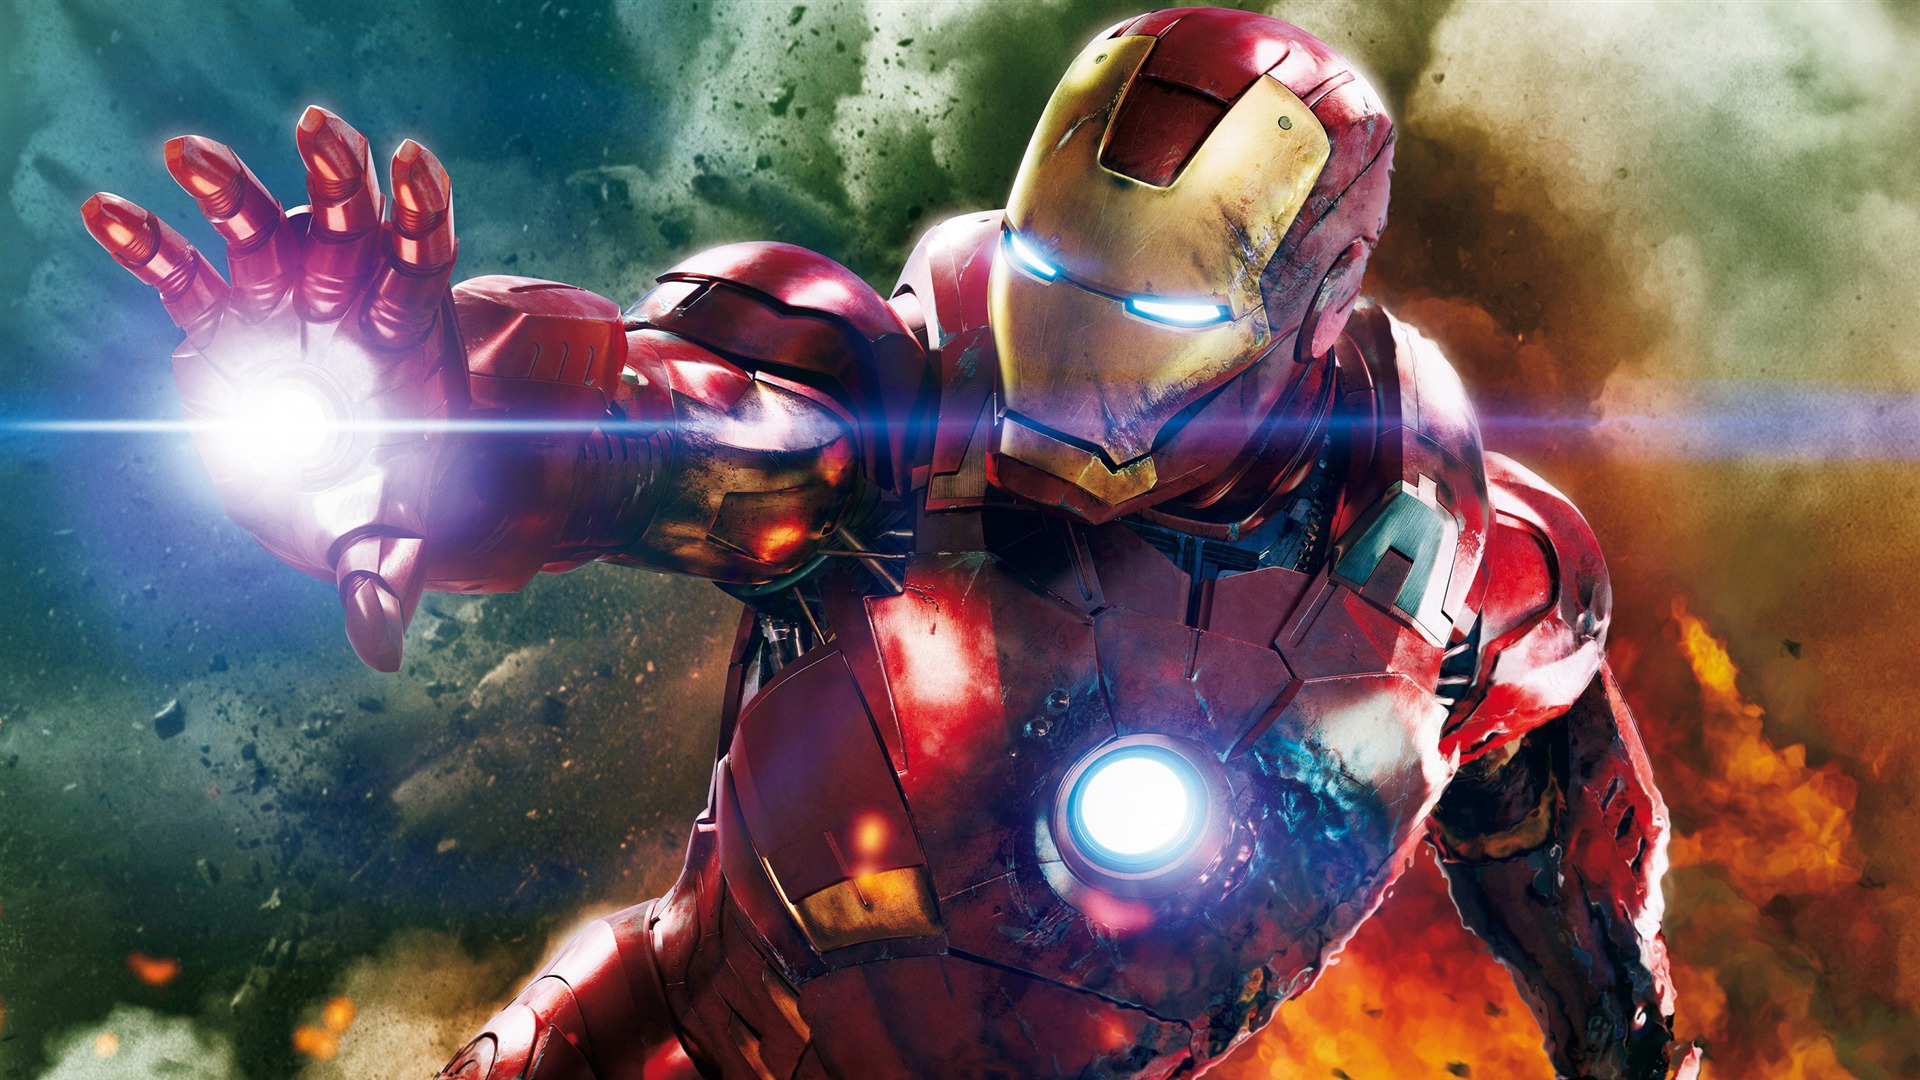 Iron Man 3 Wallpaper 8 1920x1080